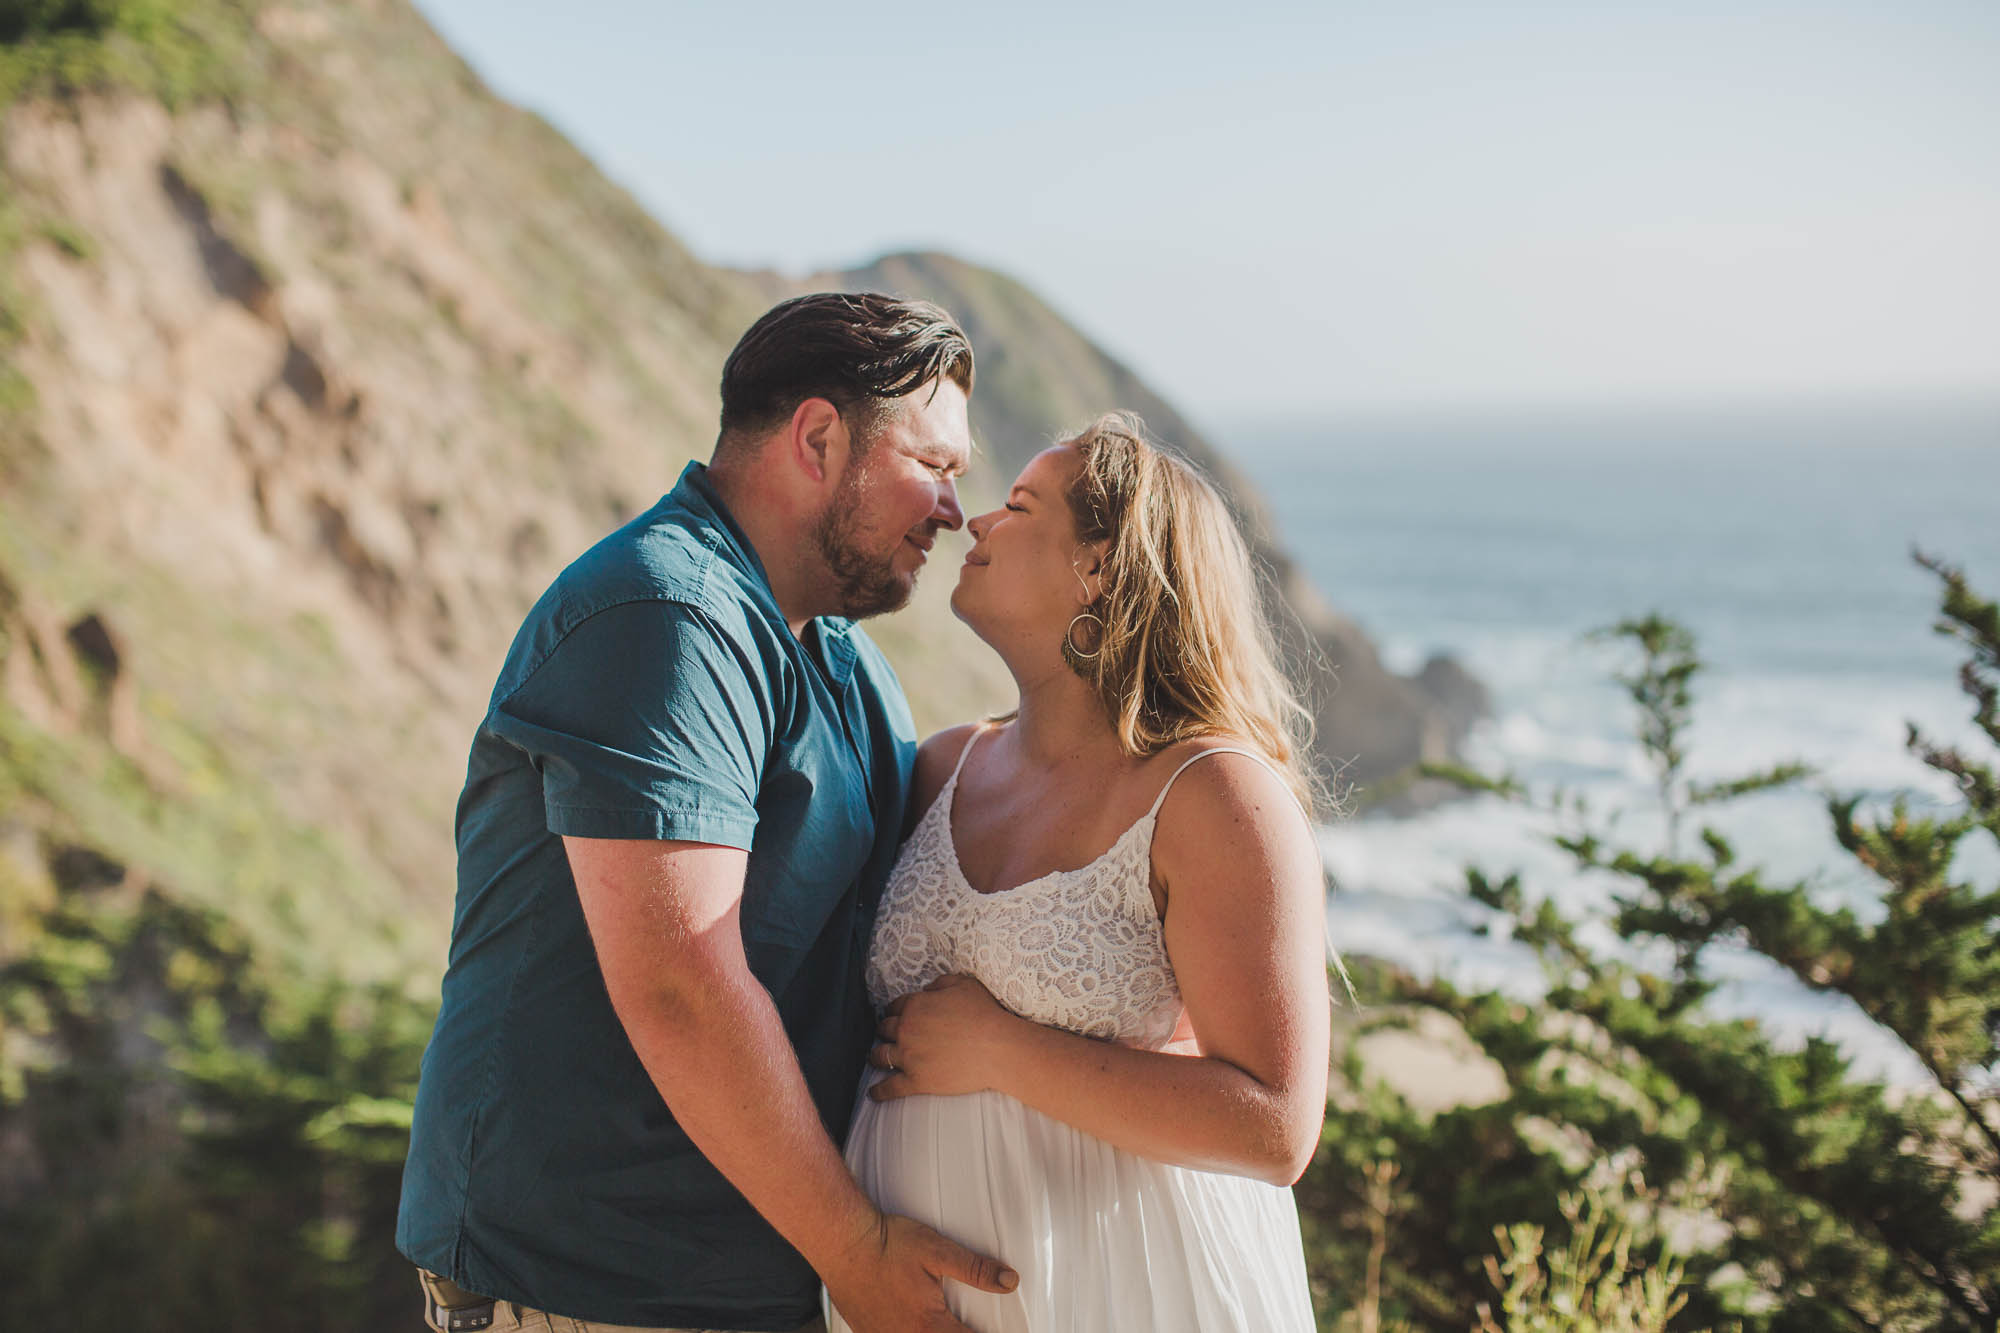 pacifica_maternity_session_california_family_photographer_00018.jpg